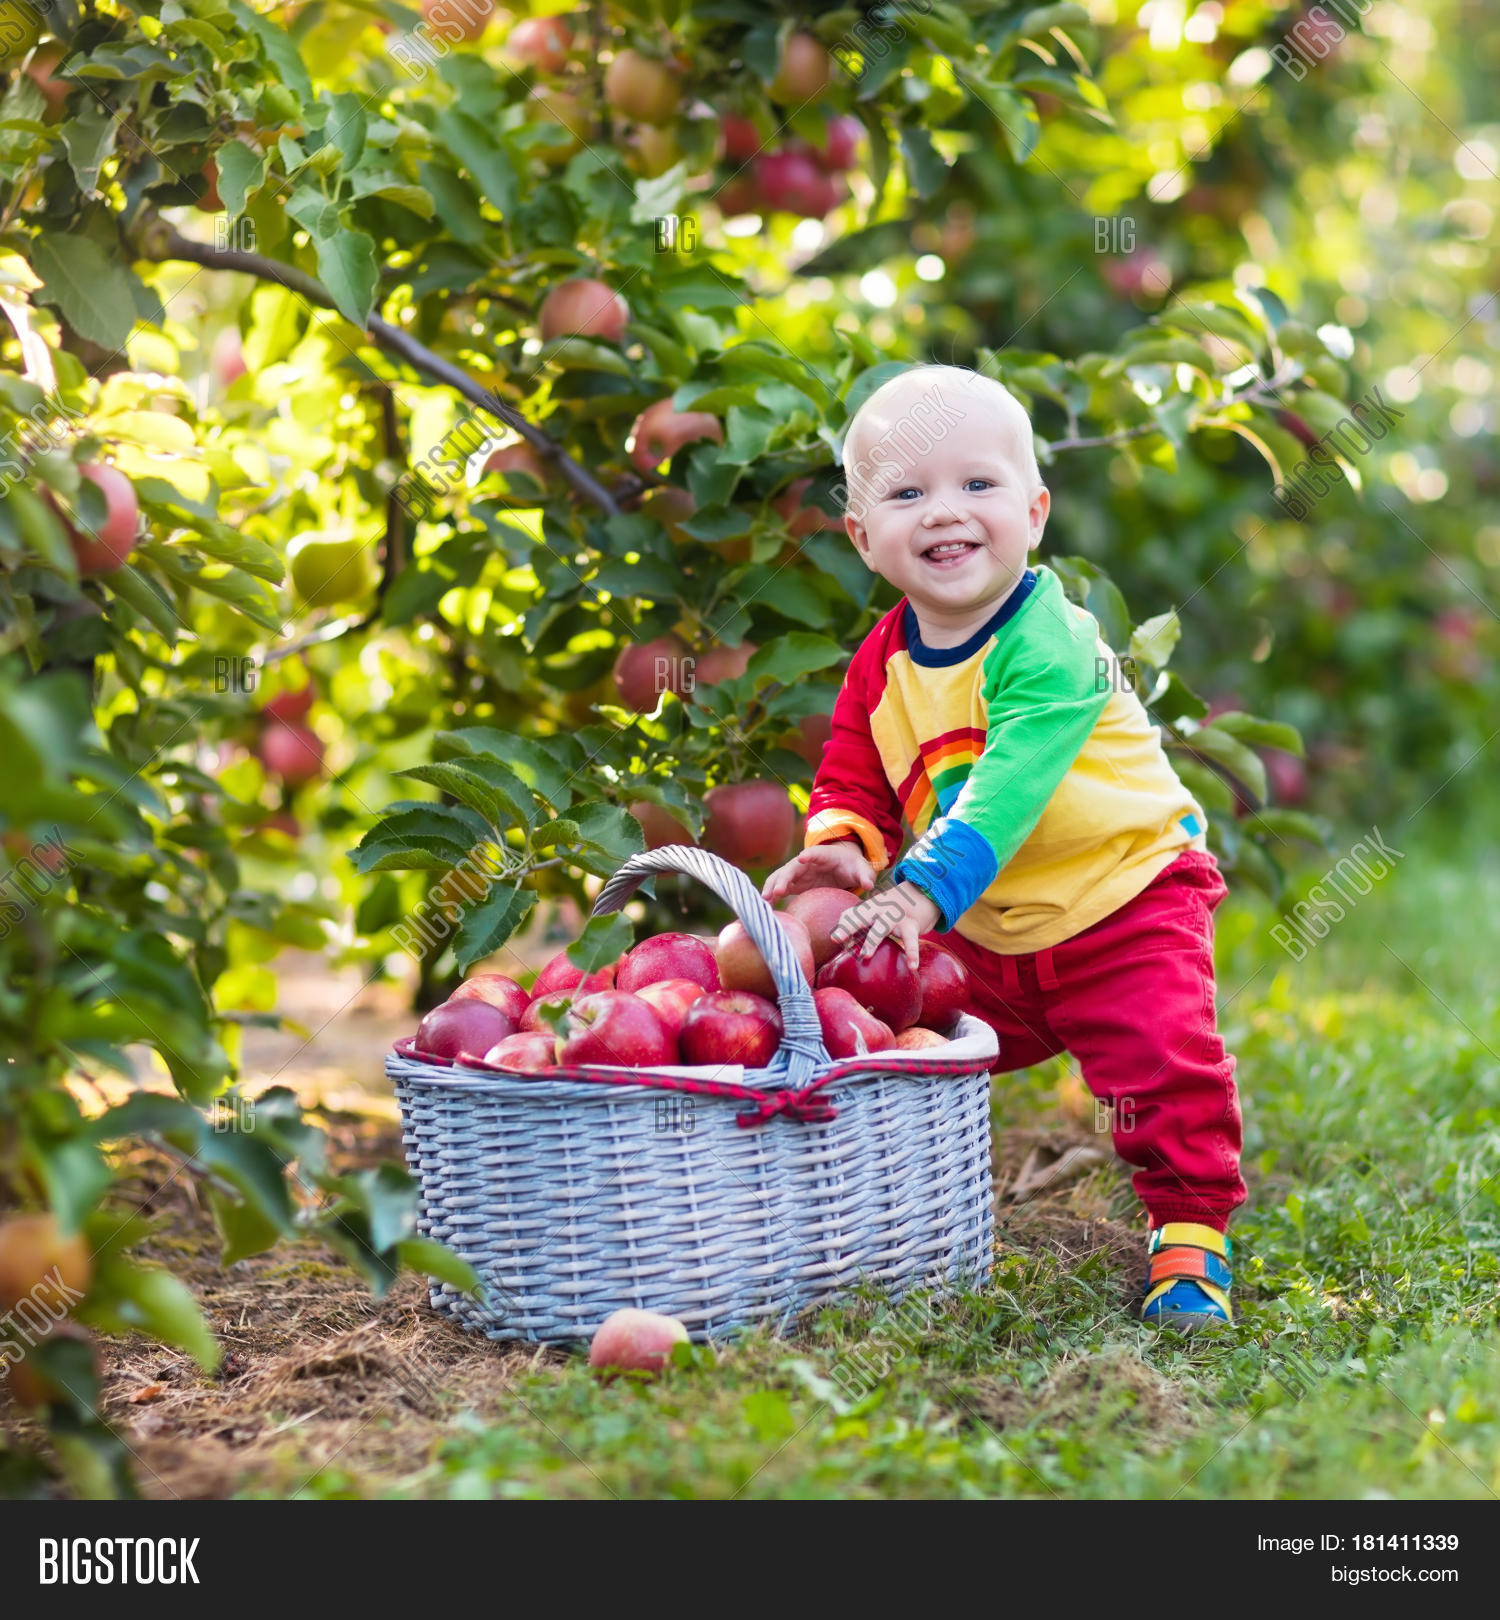 child picking apples image & photo (free trial) | bigstock